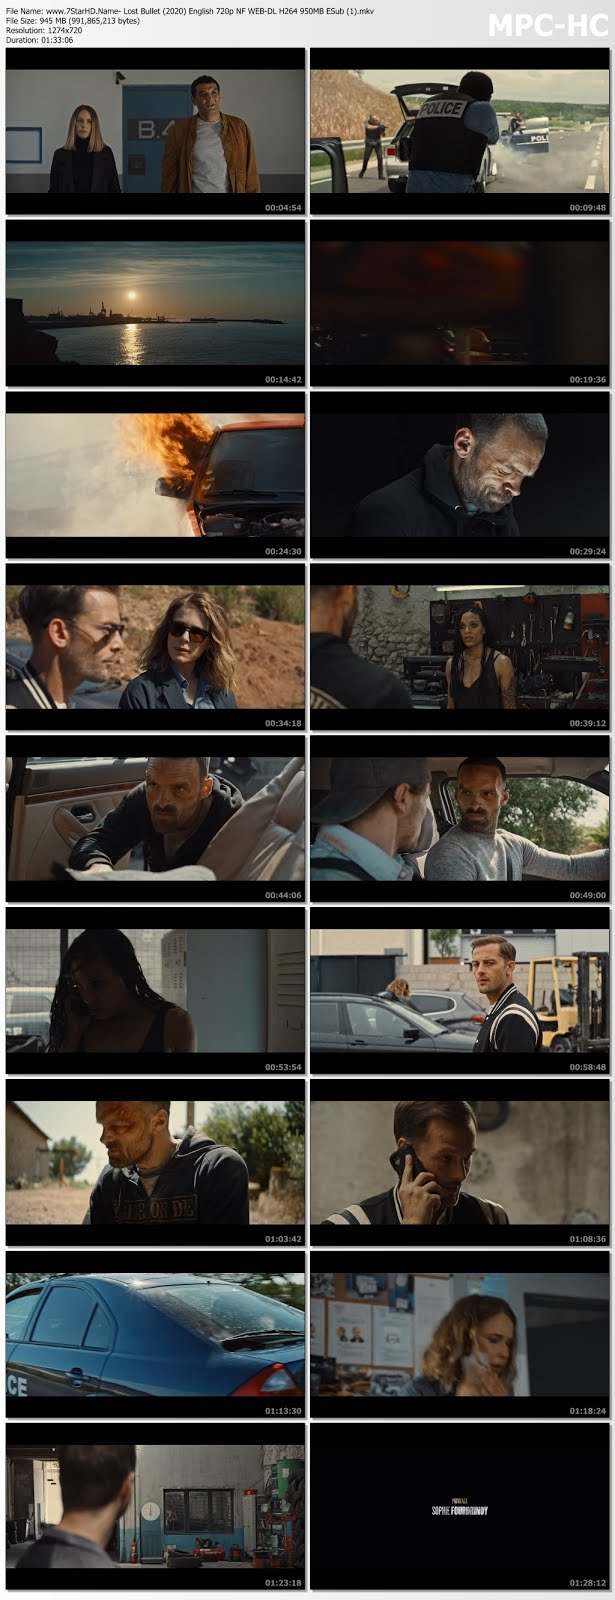 Lost Bullet 2020 English 720p Nf Web Dl Esubs Download 7starhd Name 7starhd Unblockproject Space